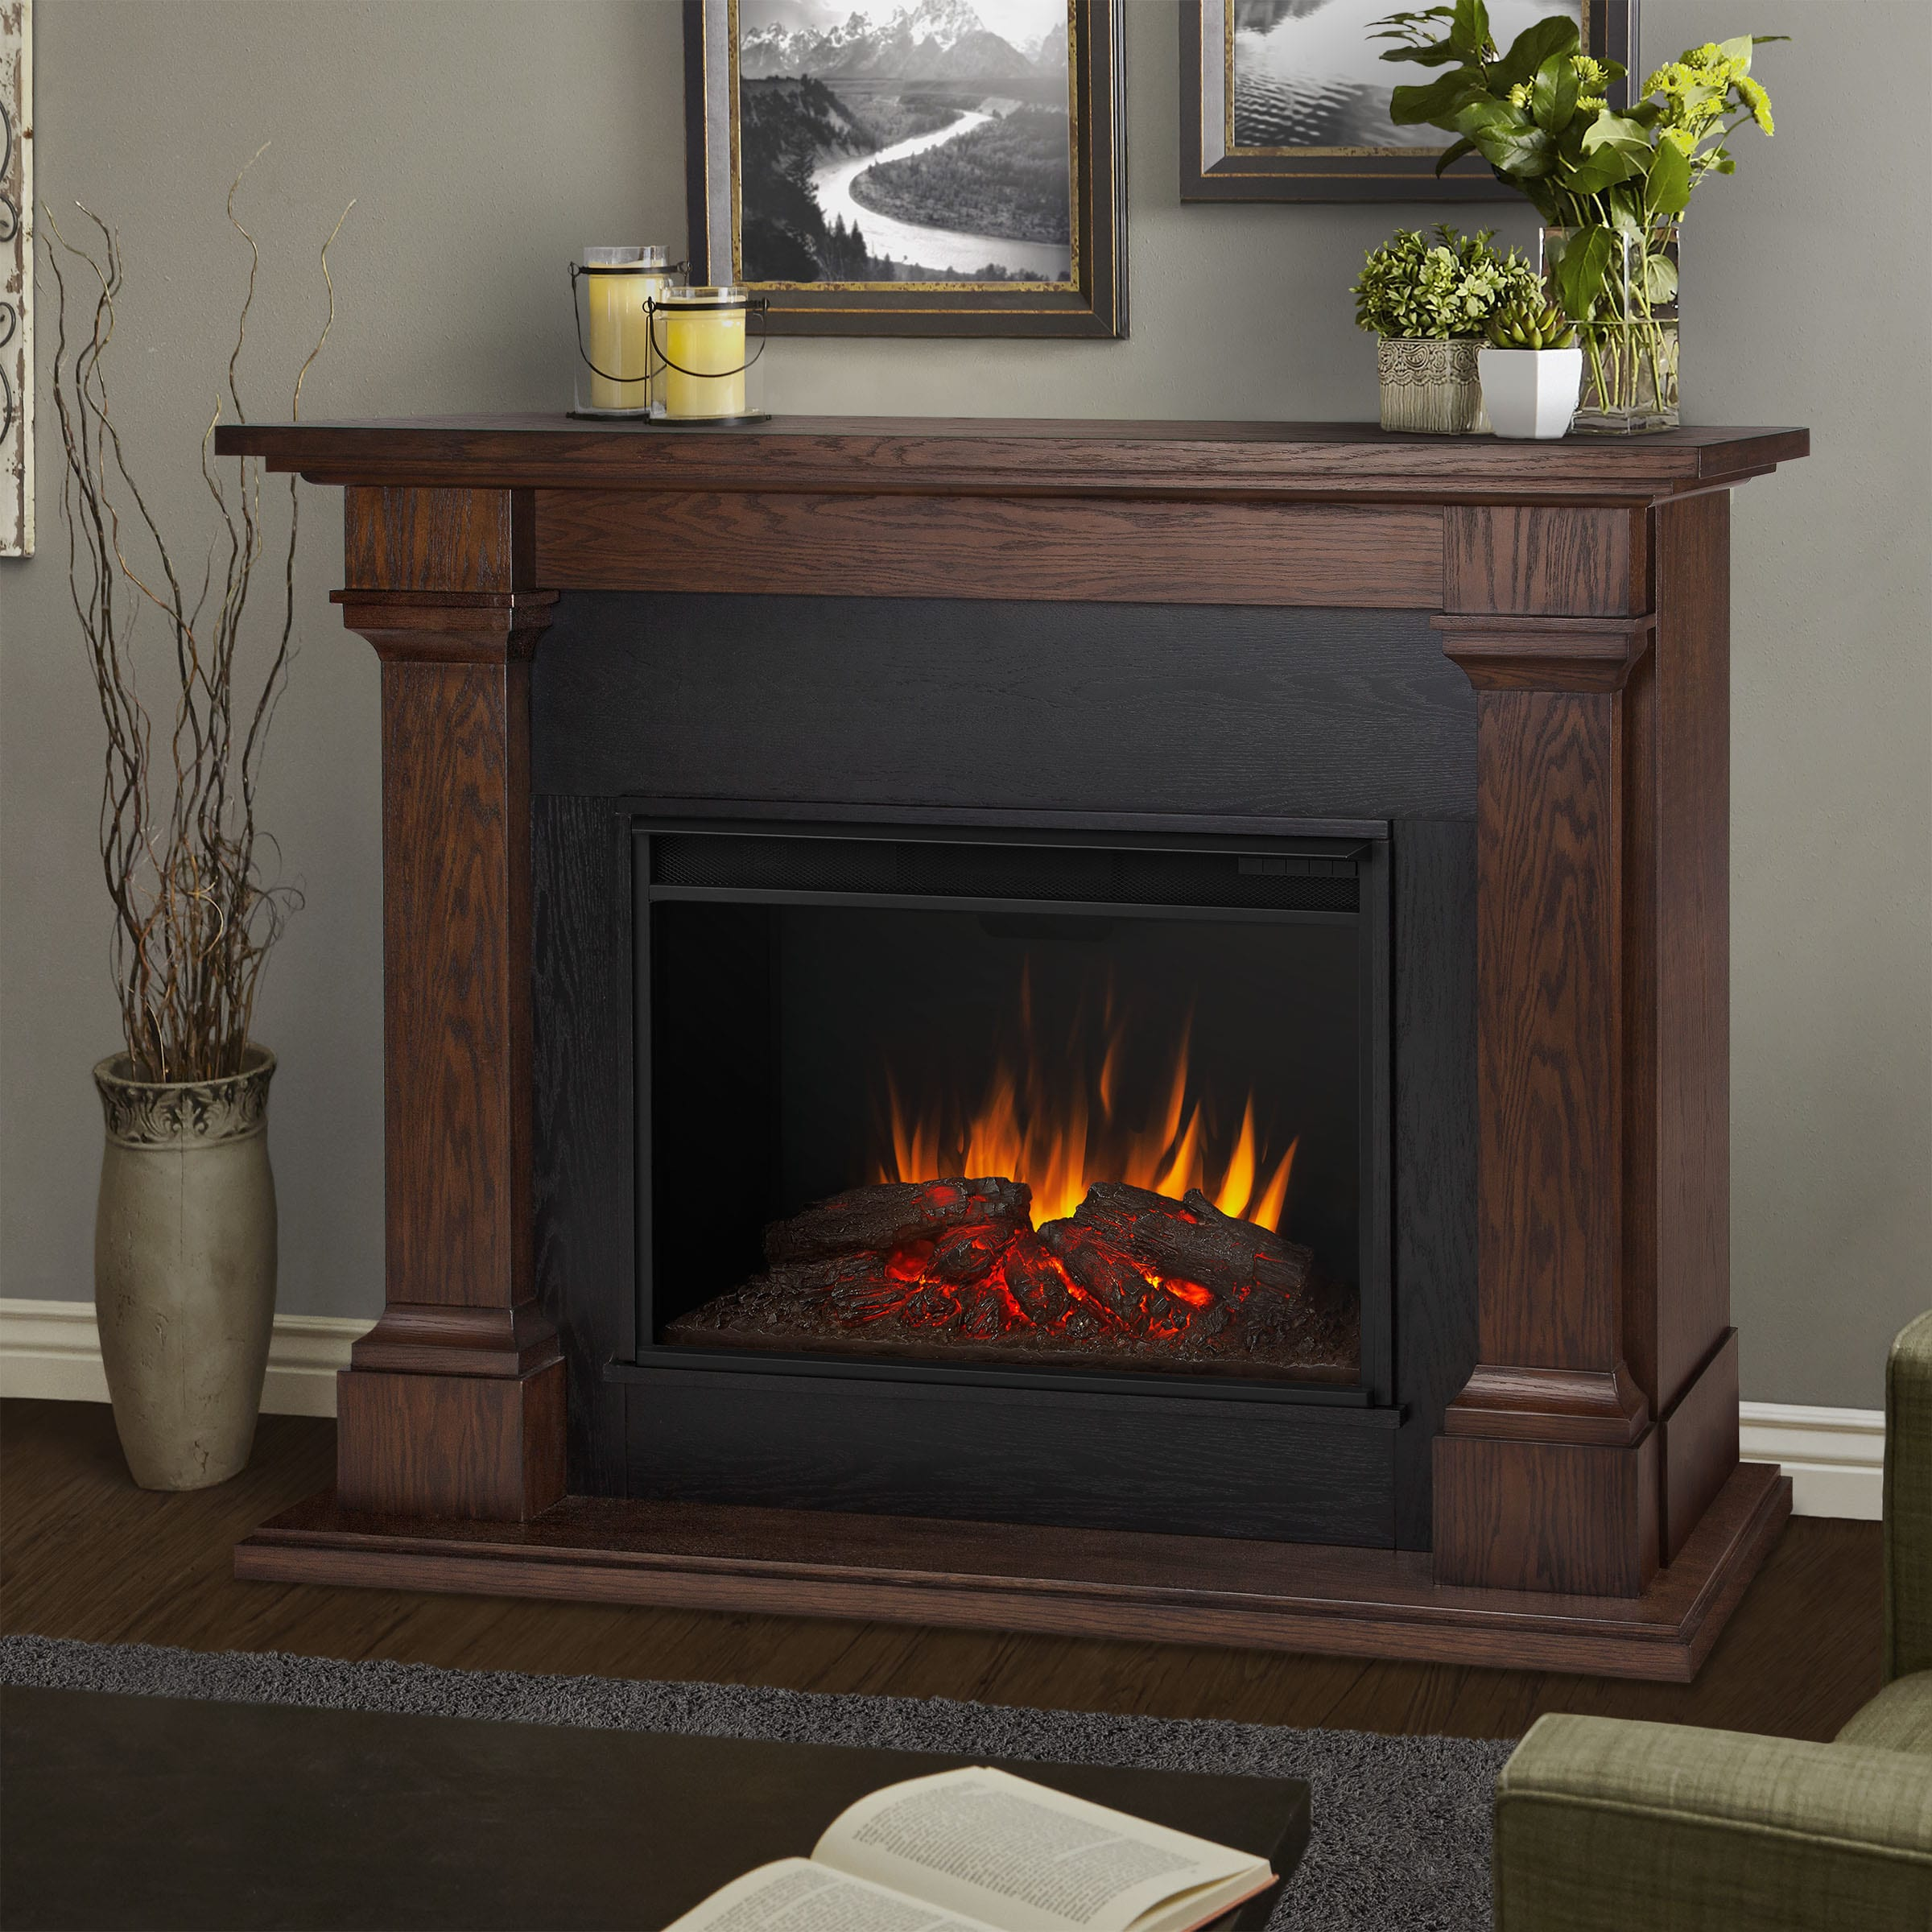 grand maxwell home real flame reviews improvement wayfair large pdx fireplace electric